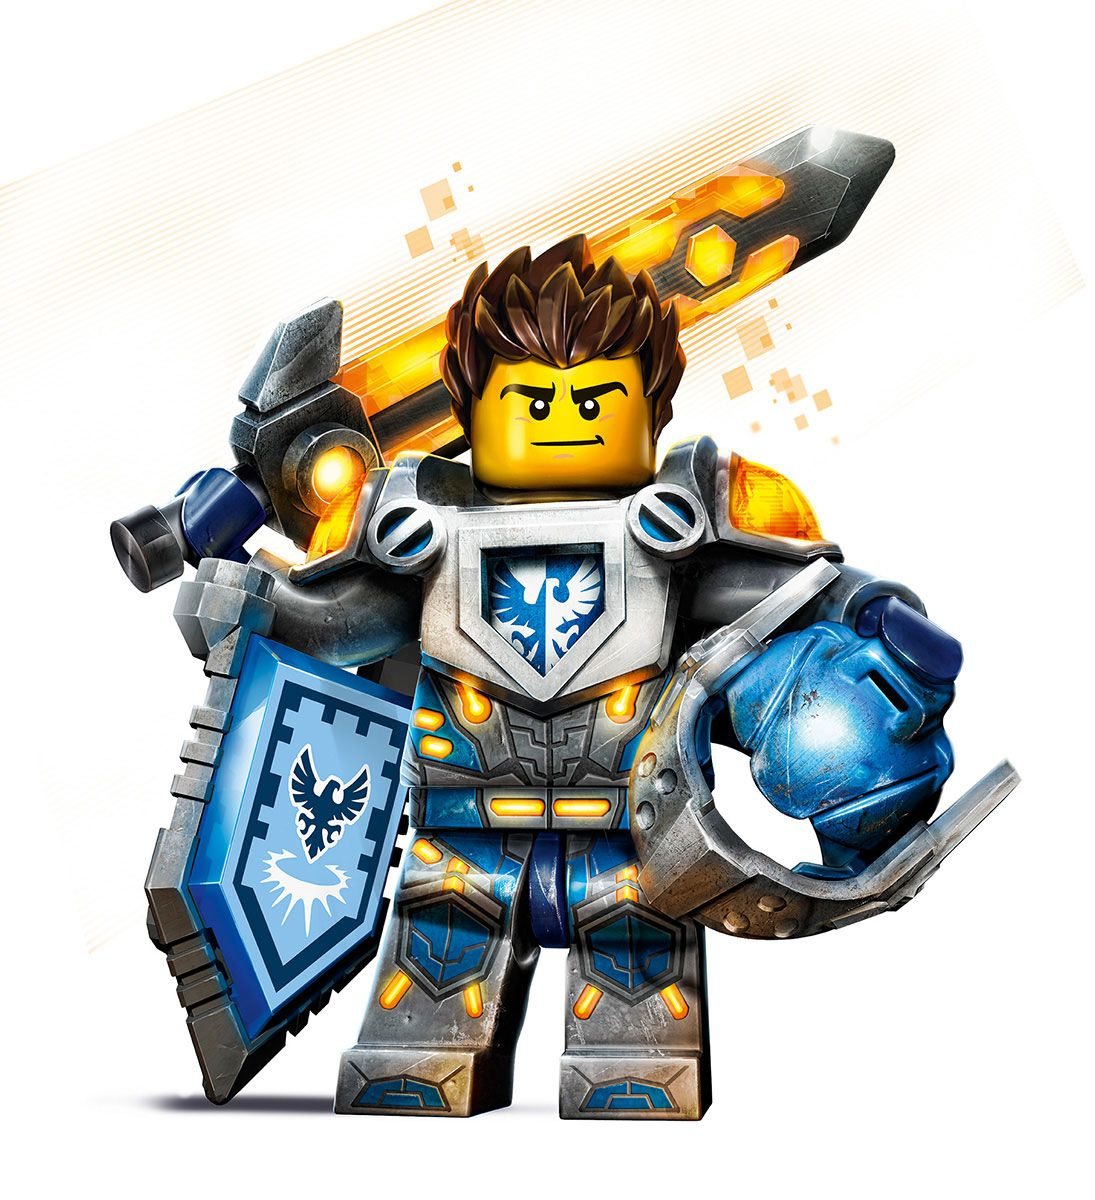 Nexo Knights Steinmonster Ausmalbilder : 02 Jpg 1095 1200 Mattias Nexo Knight Party Pinterest Legos